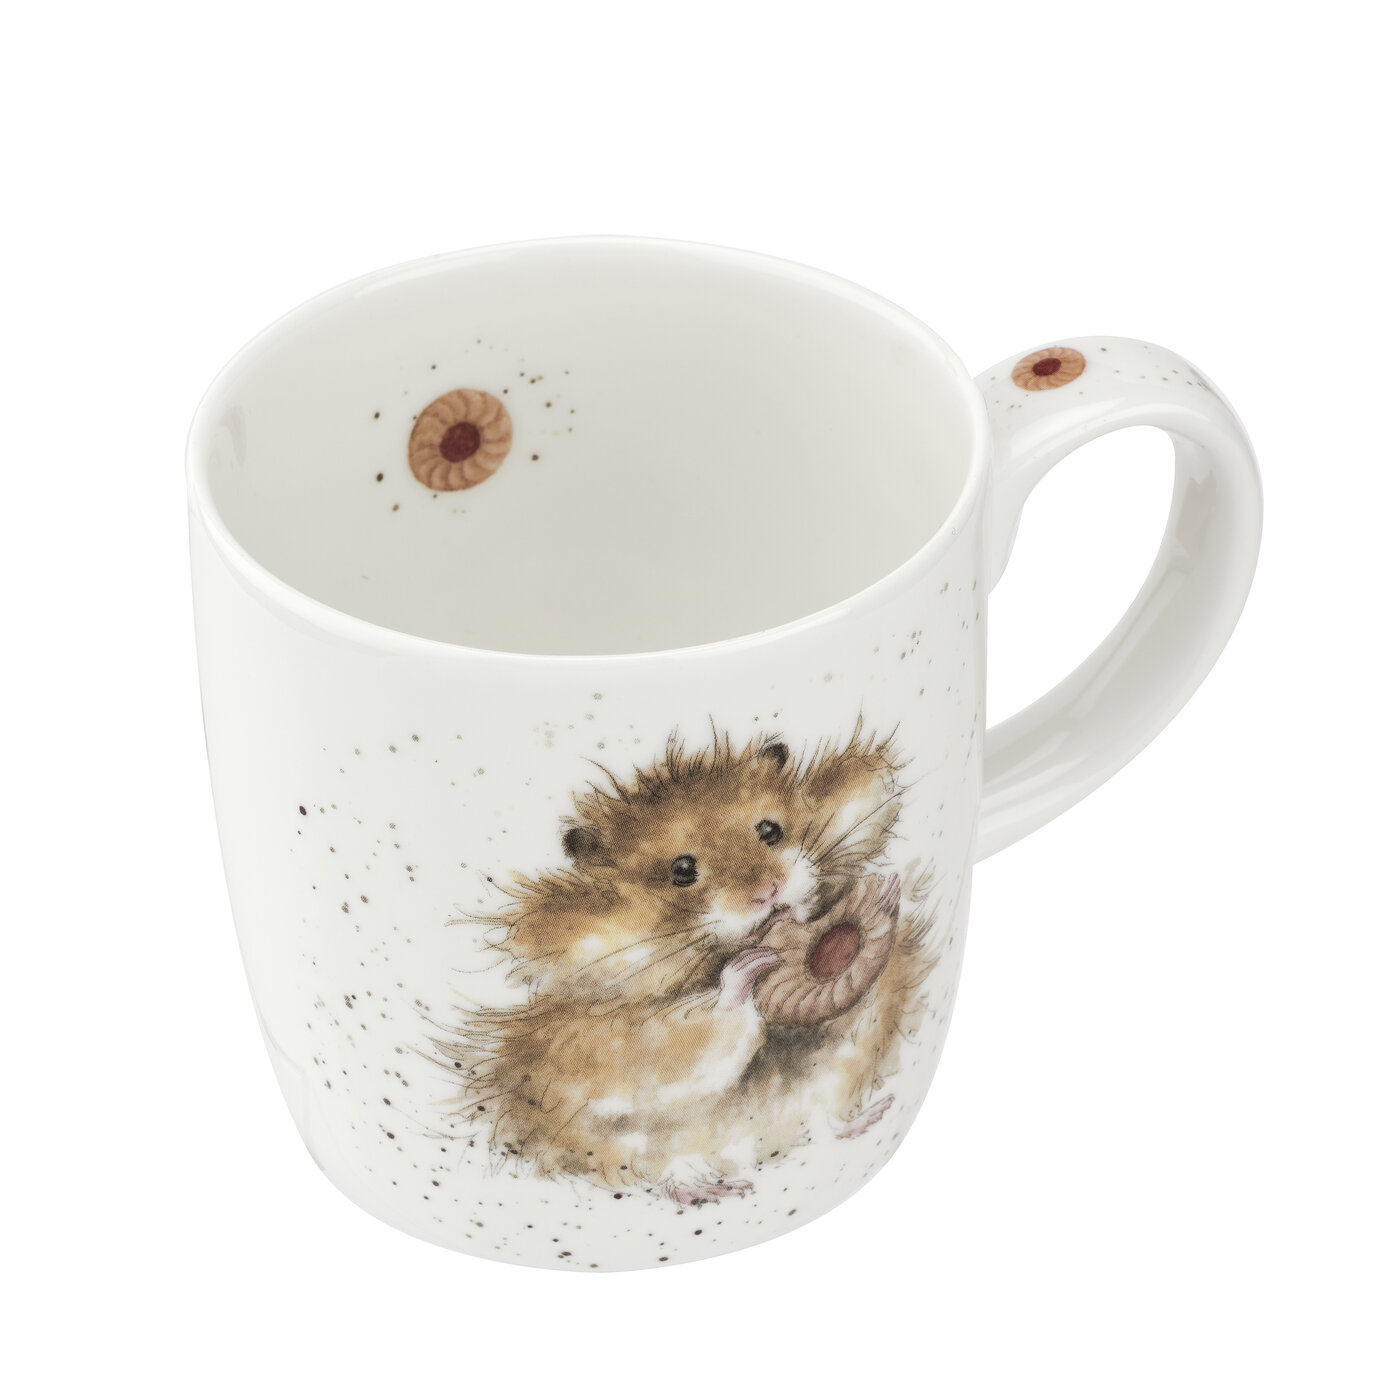 Royal Worcester Wrendale Designs MUG 14 OZ DIET STARTS TOMORROW (HAMSTER) image number 2